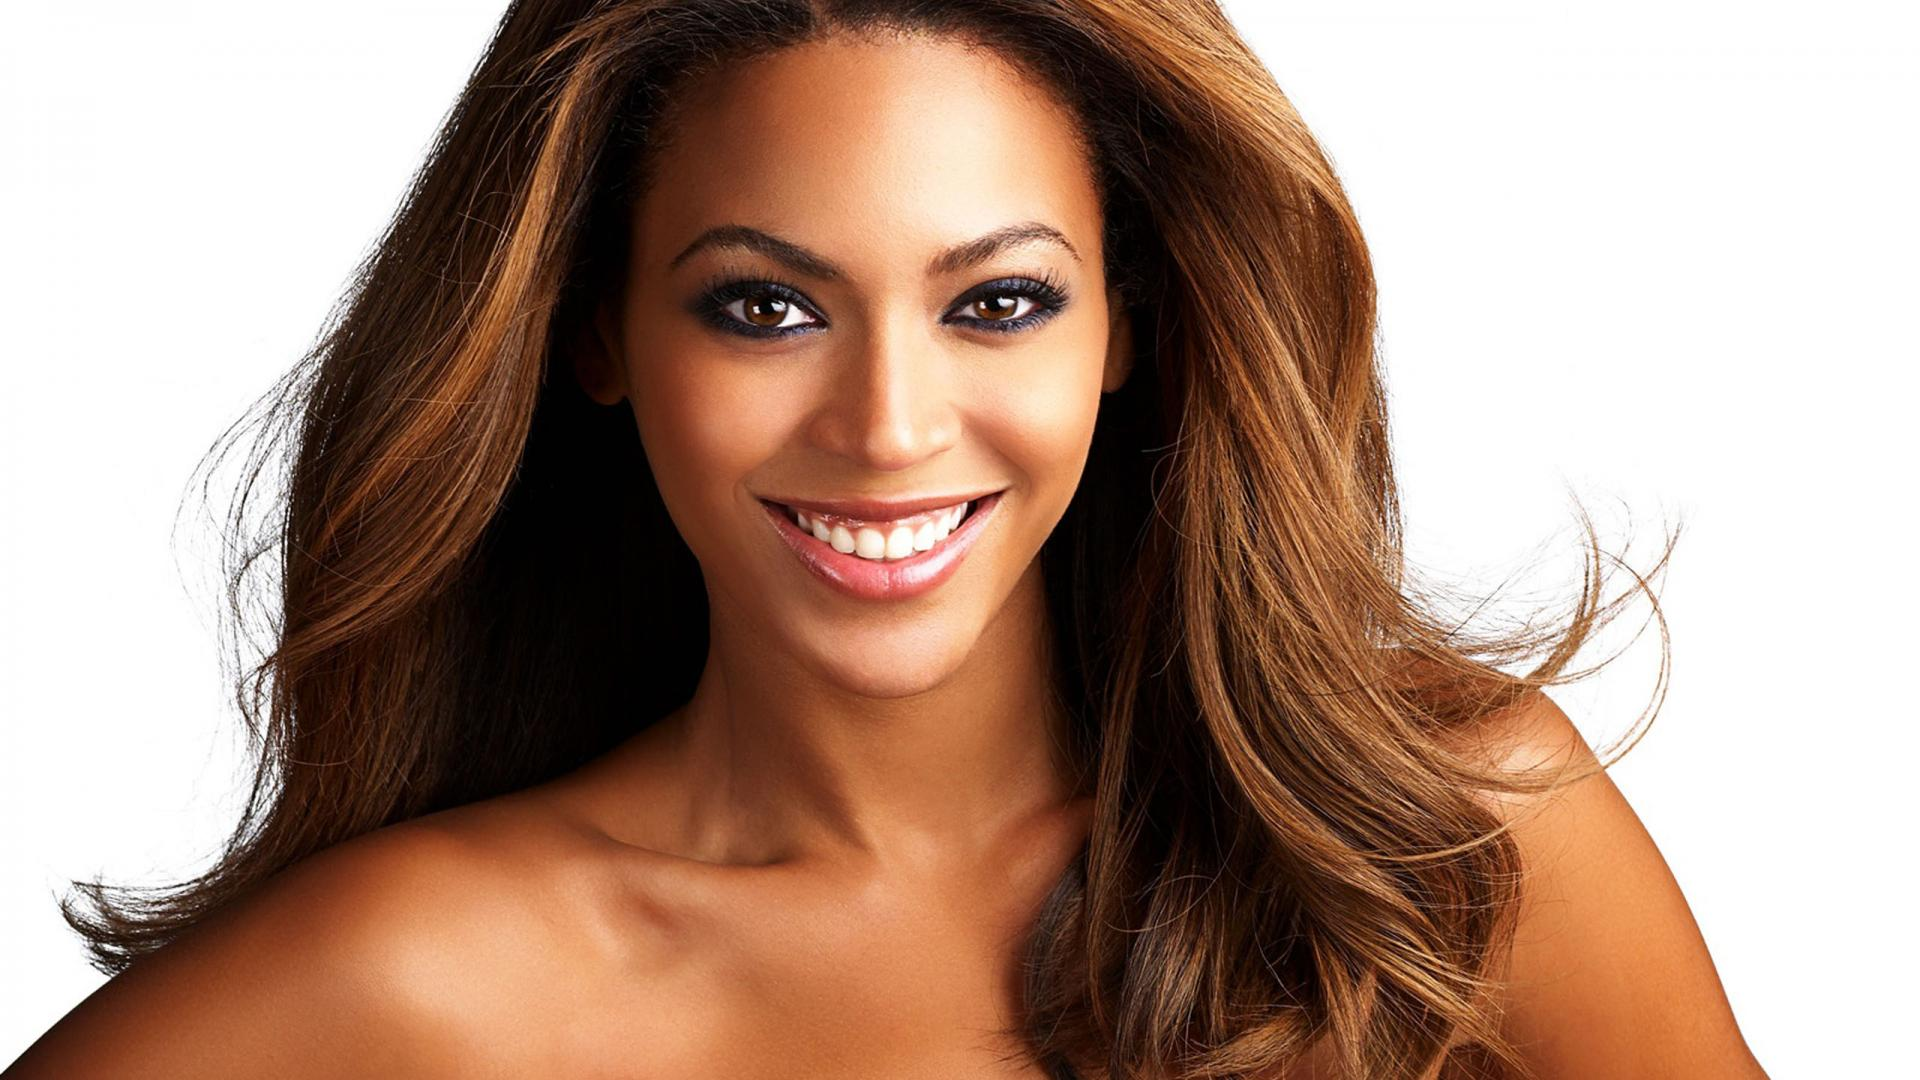 Beautiful Beyonce Smiling